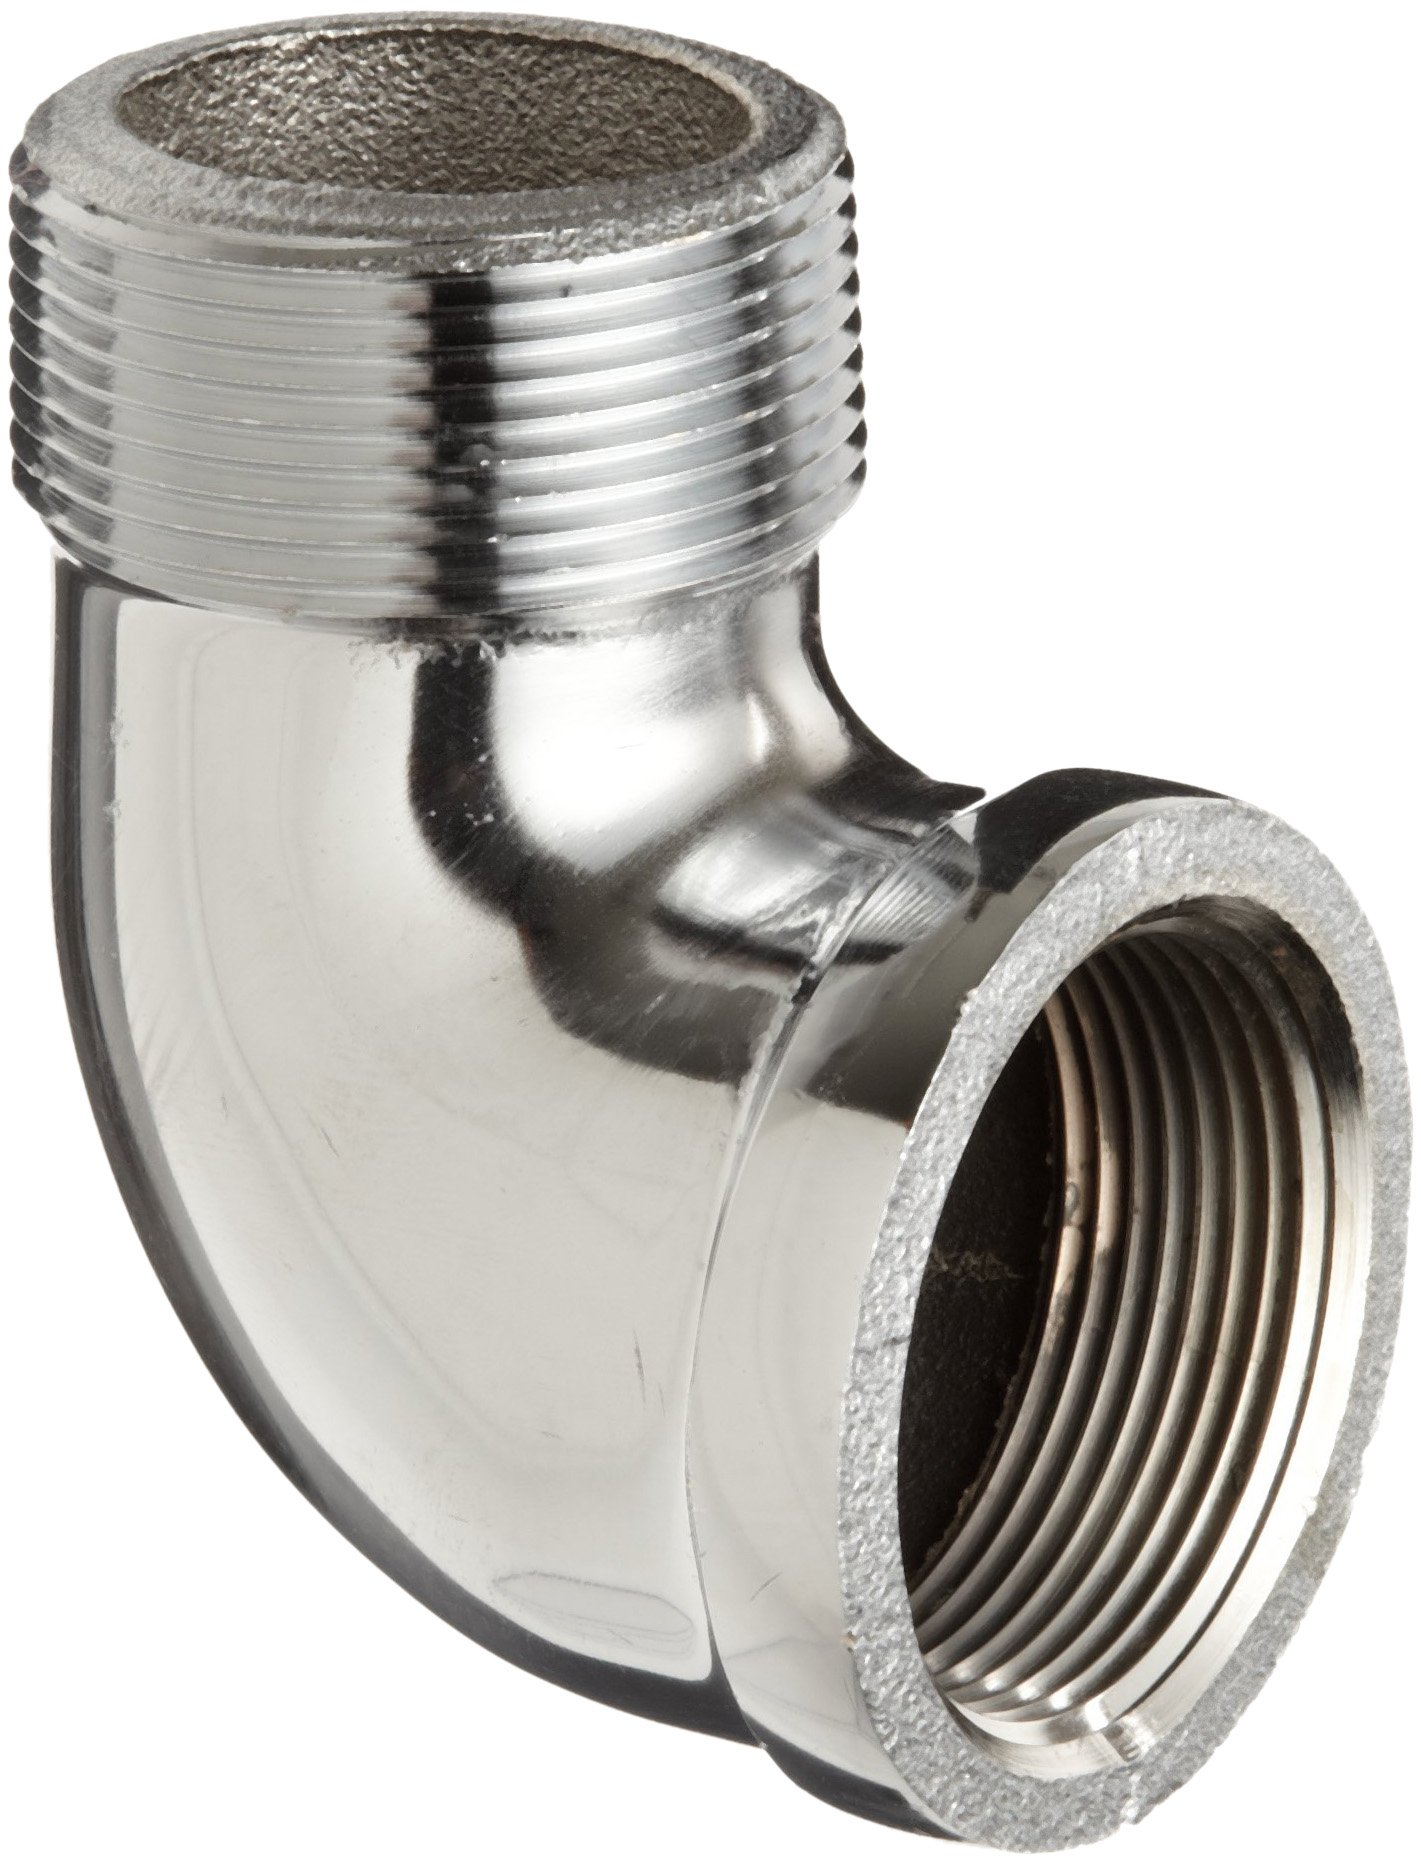 Chrome Plated Brass Pipe Fitting, 90 Degree Street Elbow, 3/8'' NPT Male x Female